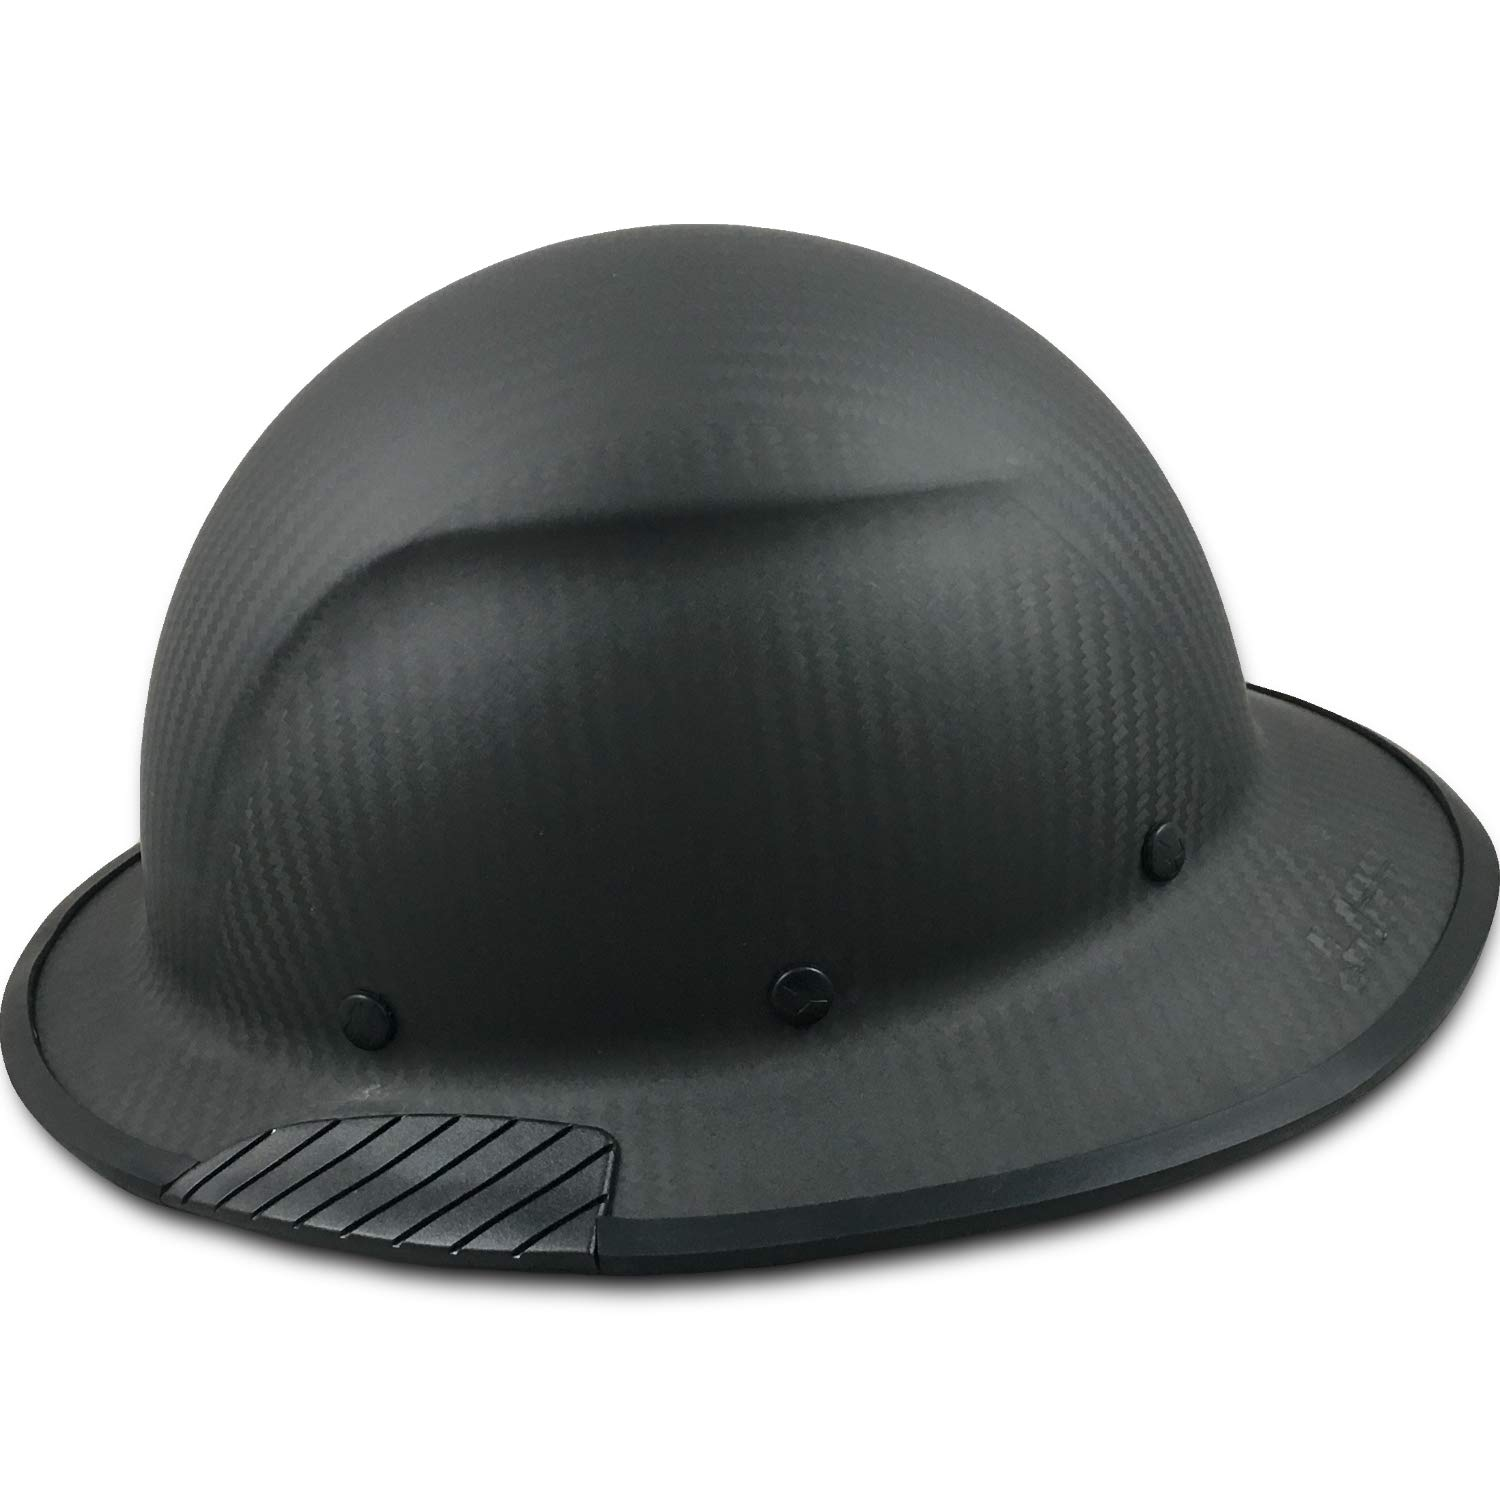 Texas America Safety Company Actual Carbon Fiber Material Hard Hat with Hard Hat Tote- Full Brim, Matte Black with Protective Edging by Texas America Safety Company (Image #2)